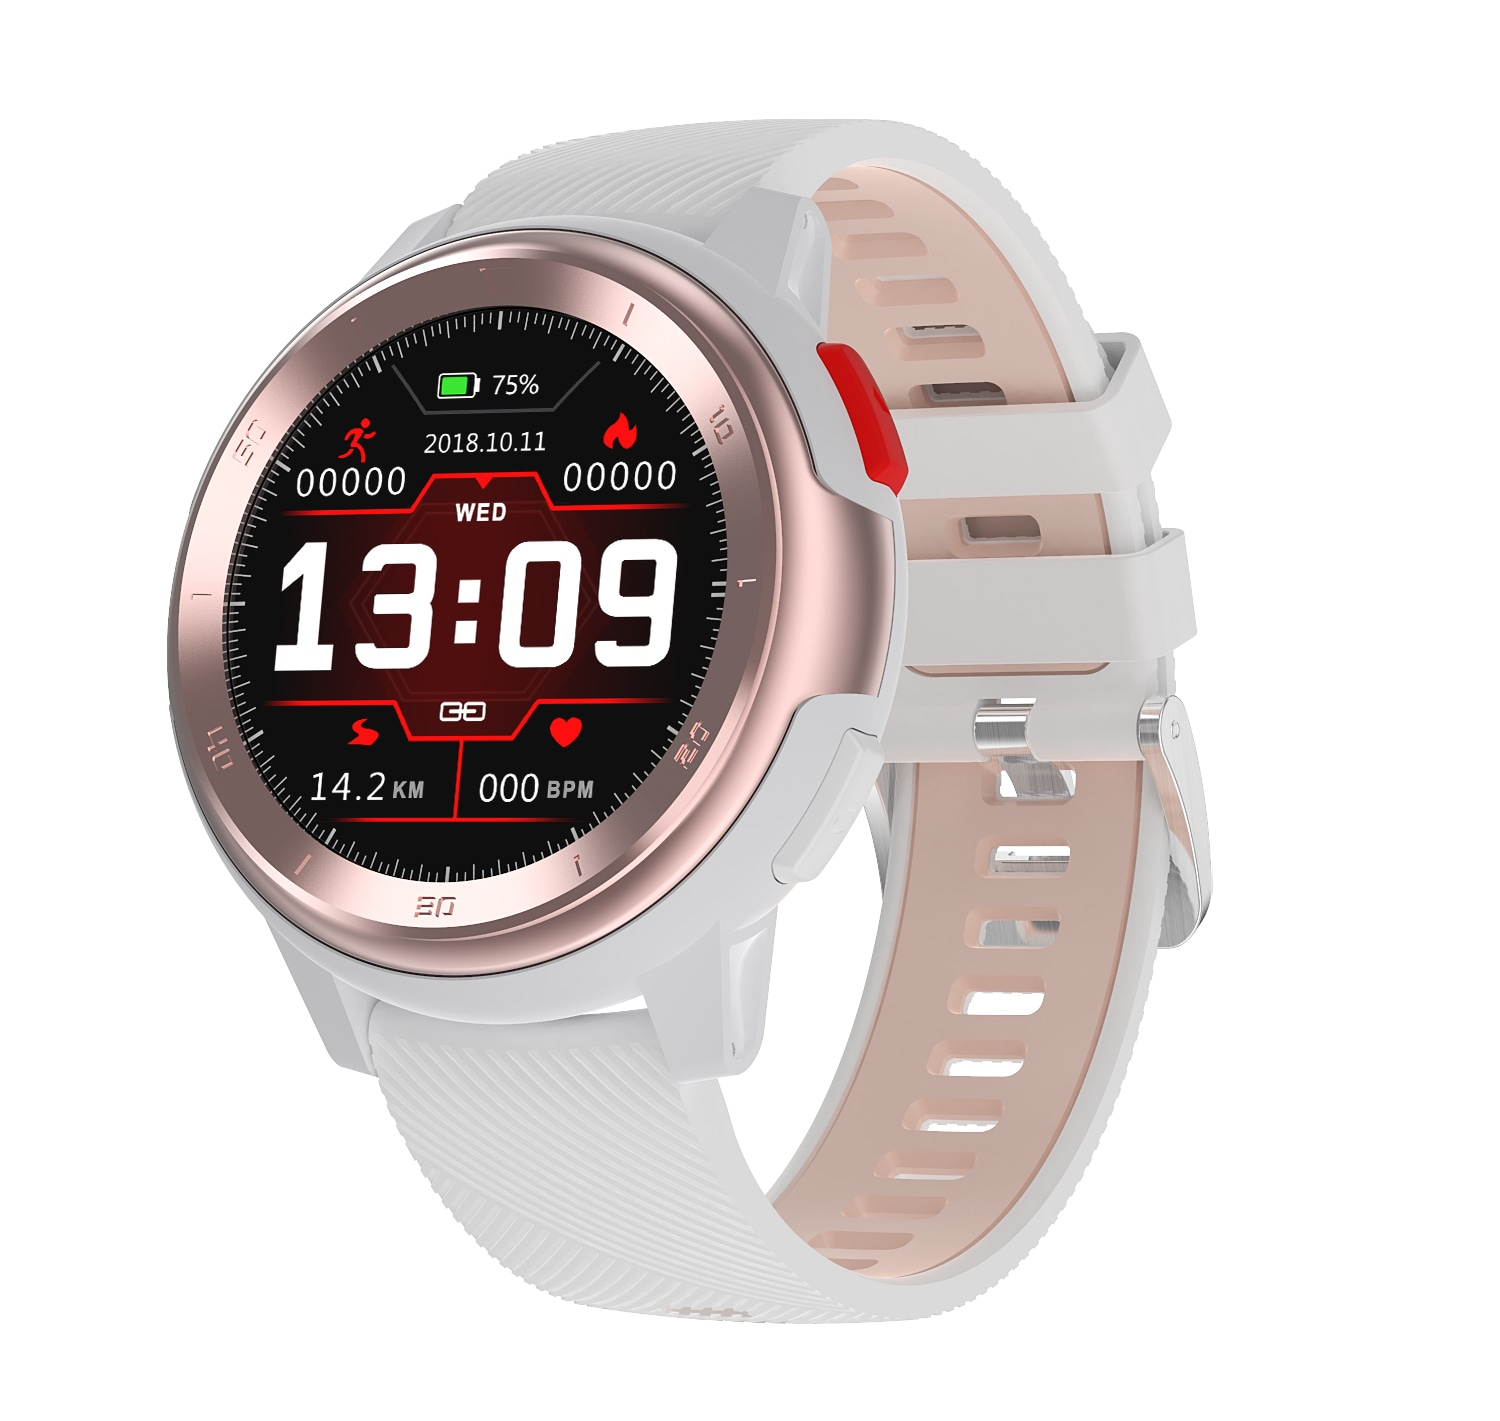 No.1 DT68 1.2 Inch Full Circle Touchscreen HD Smart Watch (IP68 Waterproof, 30 Days Long Standby, Multiple Watch Faces, White)